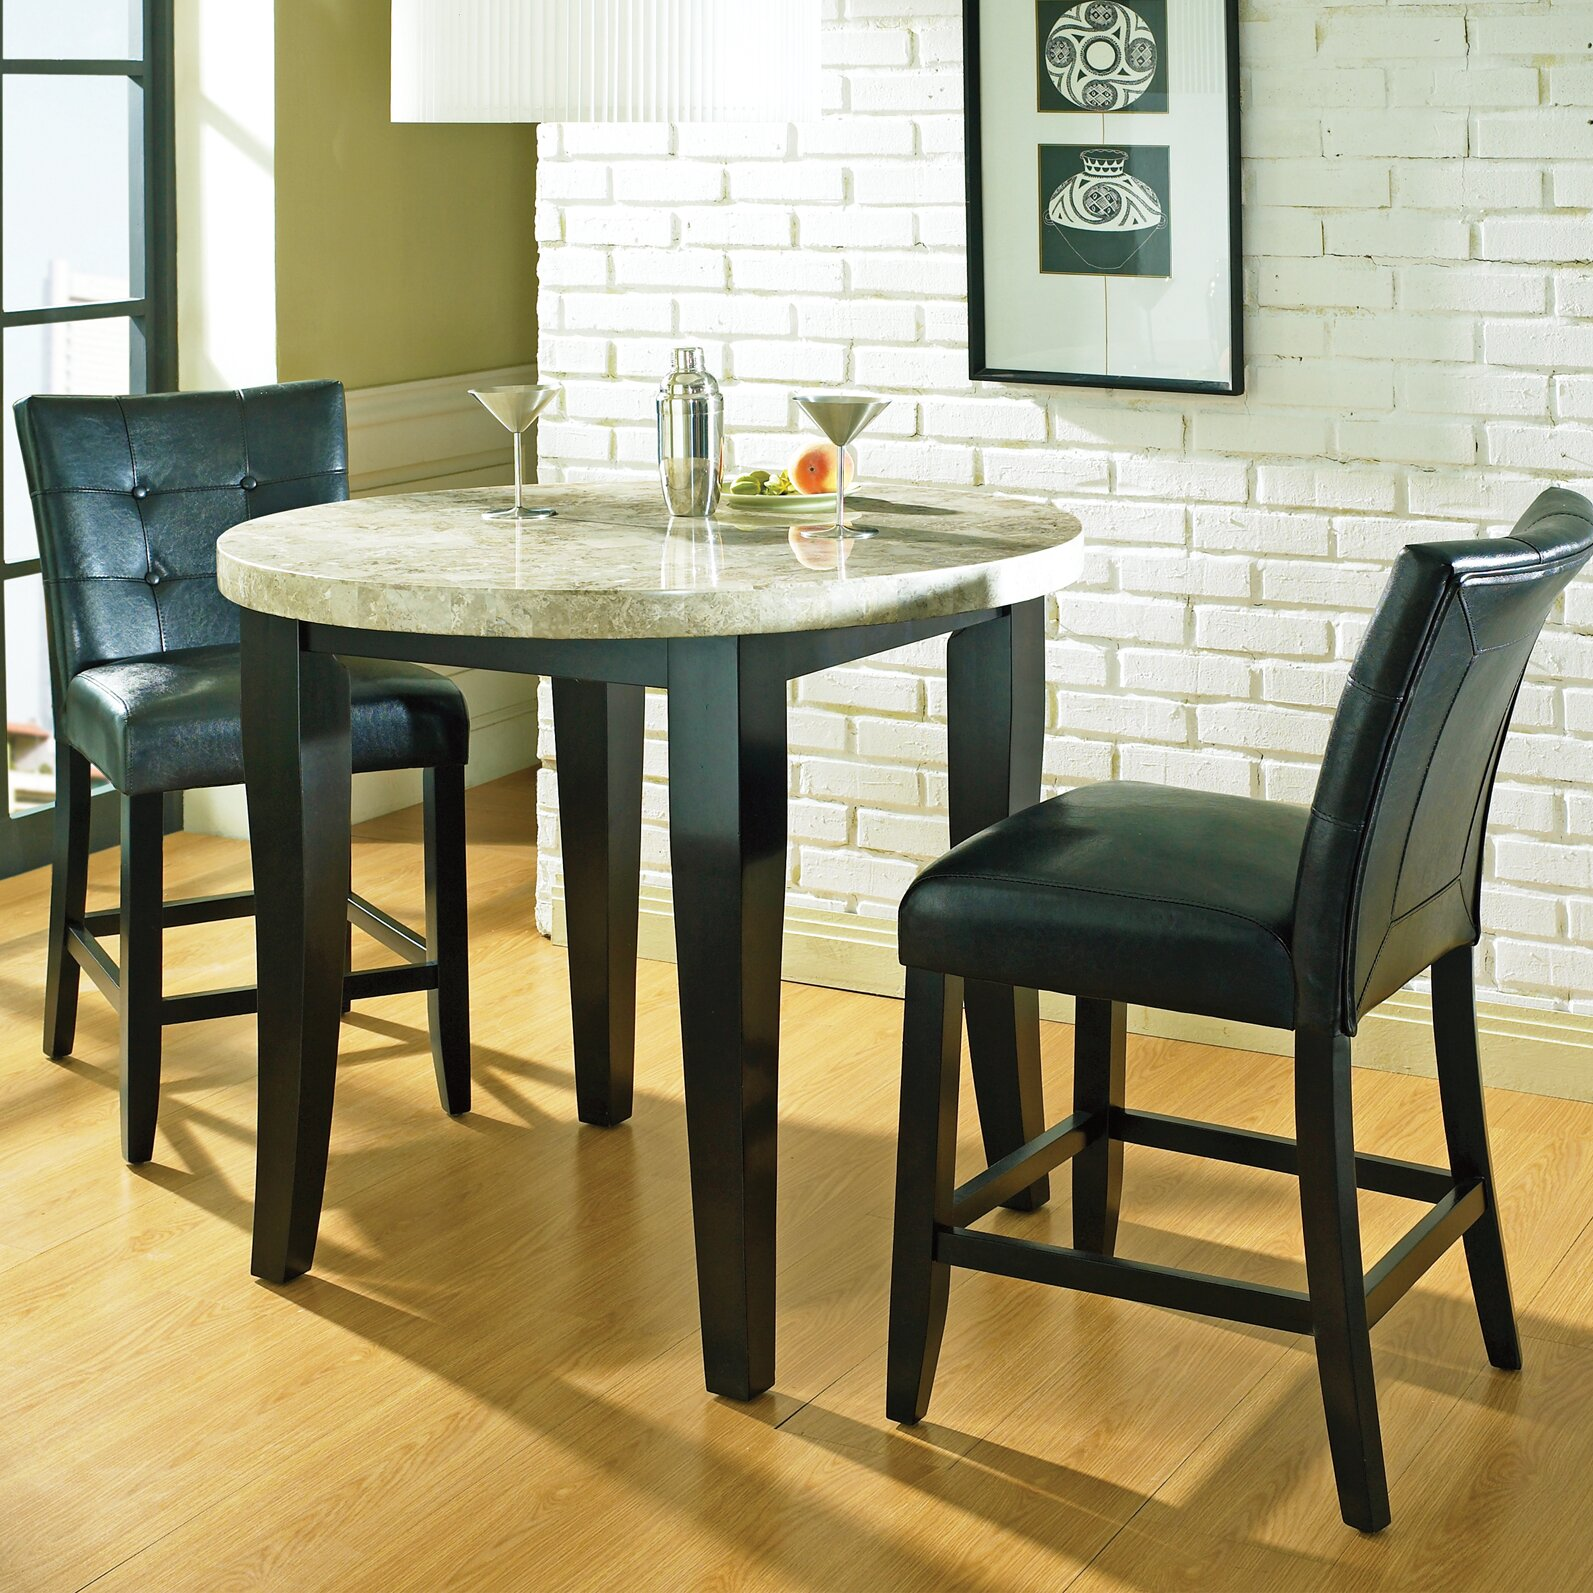 Kitchen pub table and chairs - Chloe Counter Height Pub Table Set